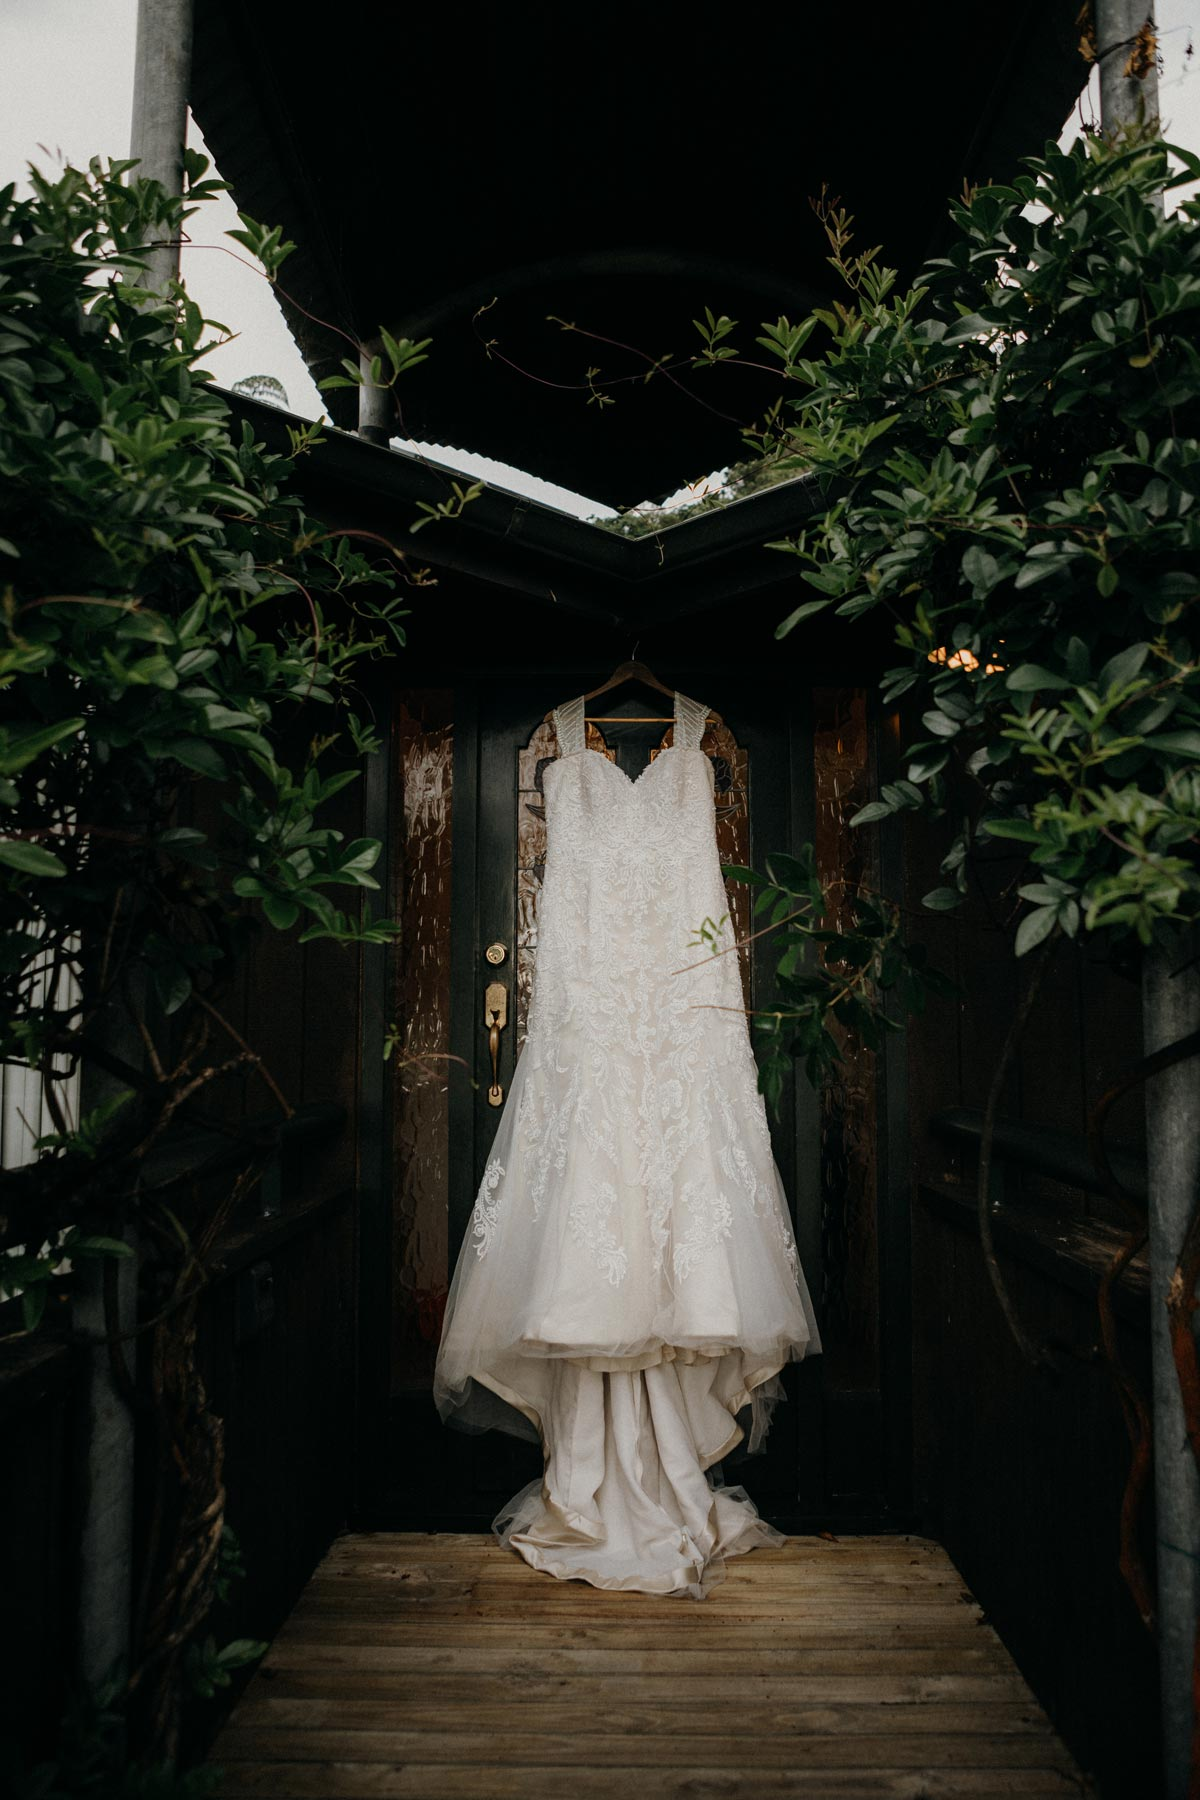 black barn wedding dress photo lake tarawera rotorua